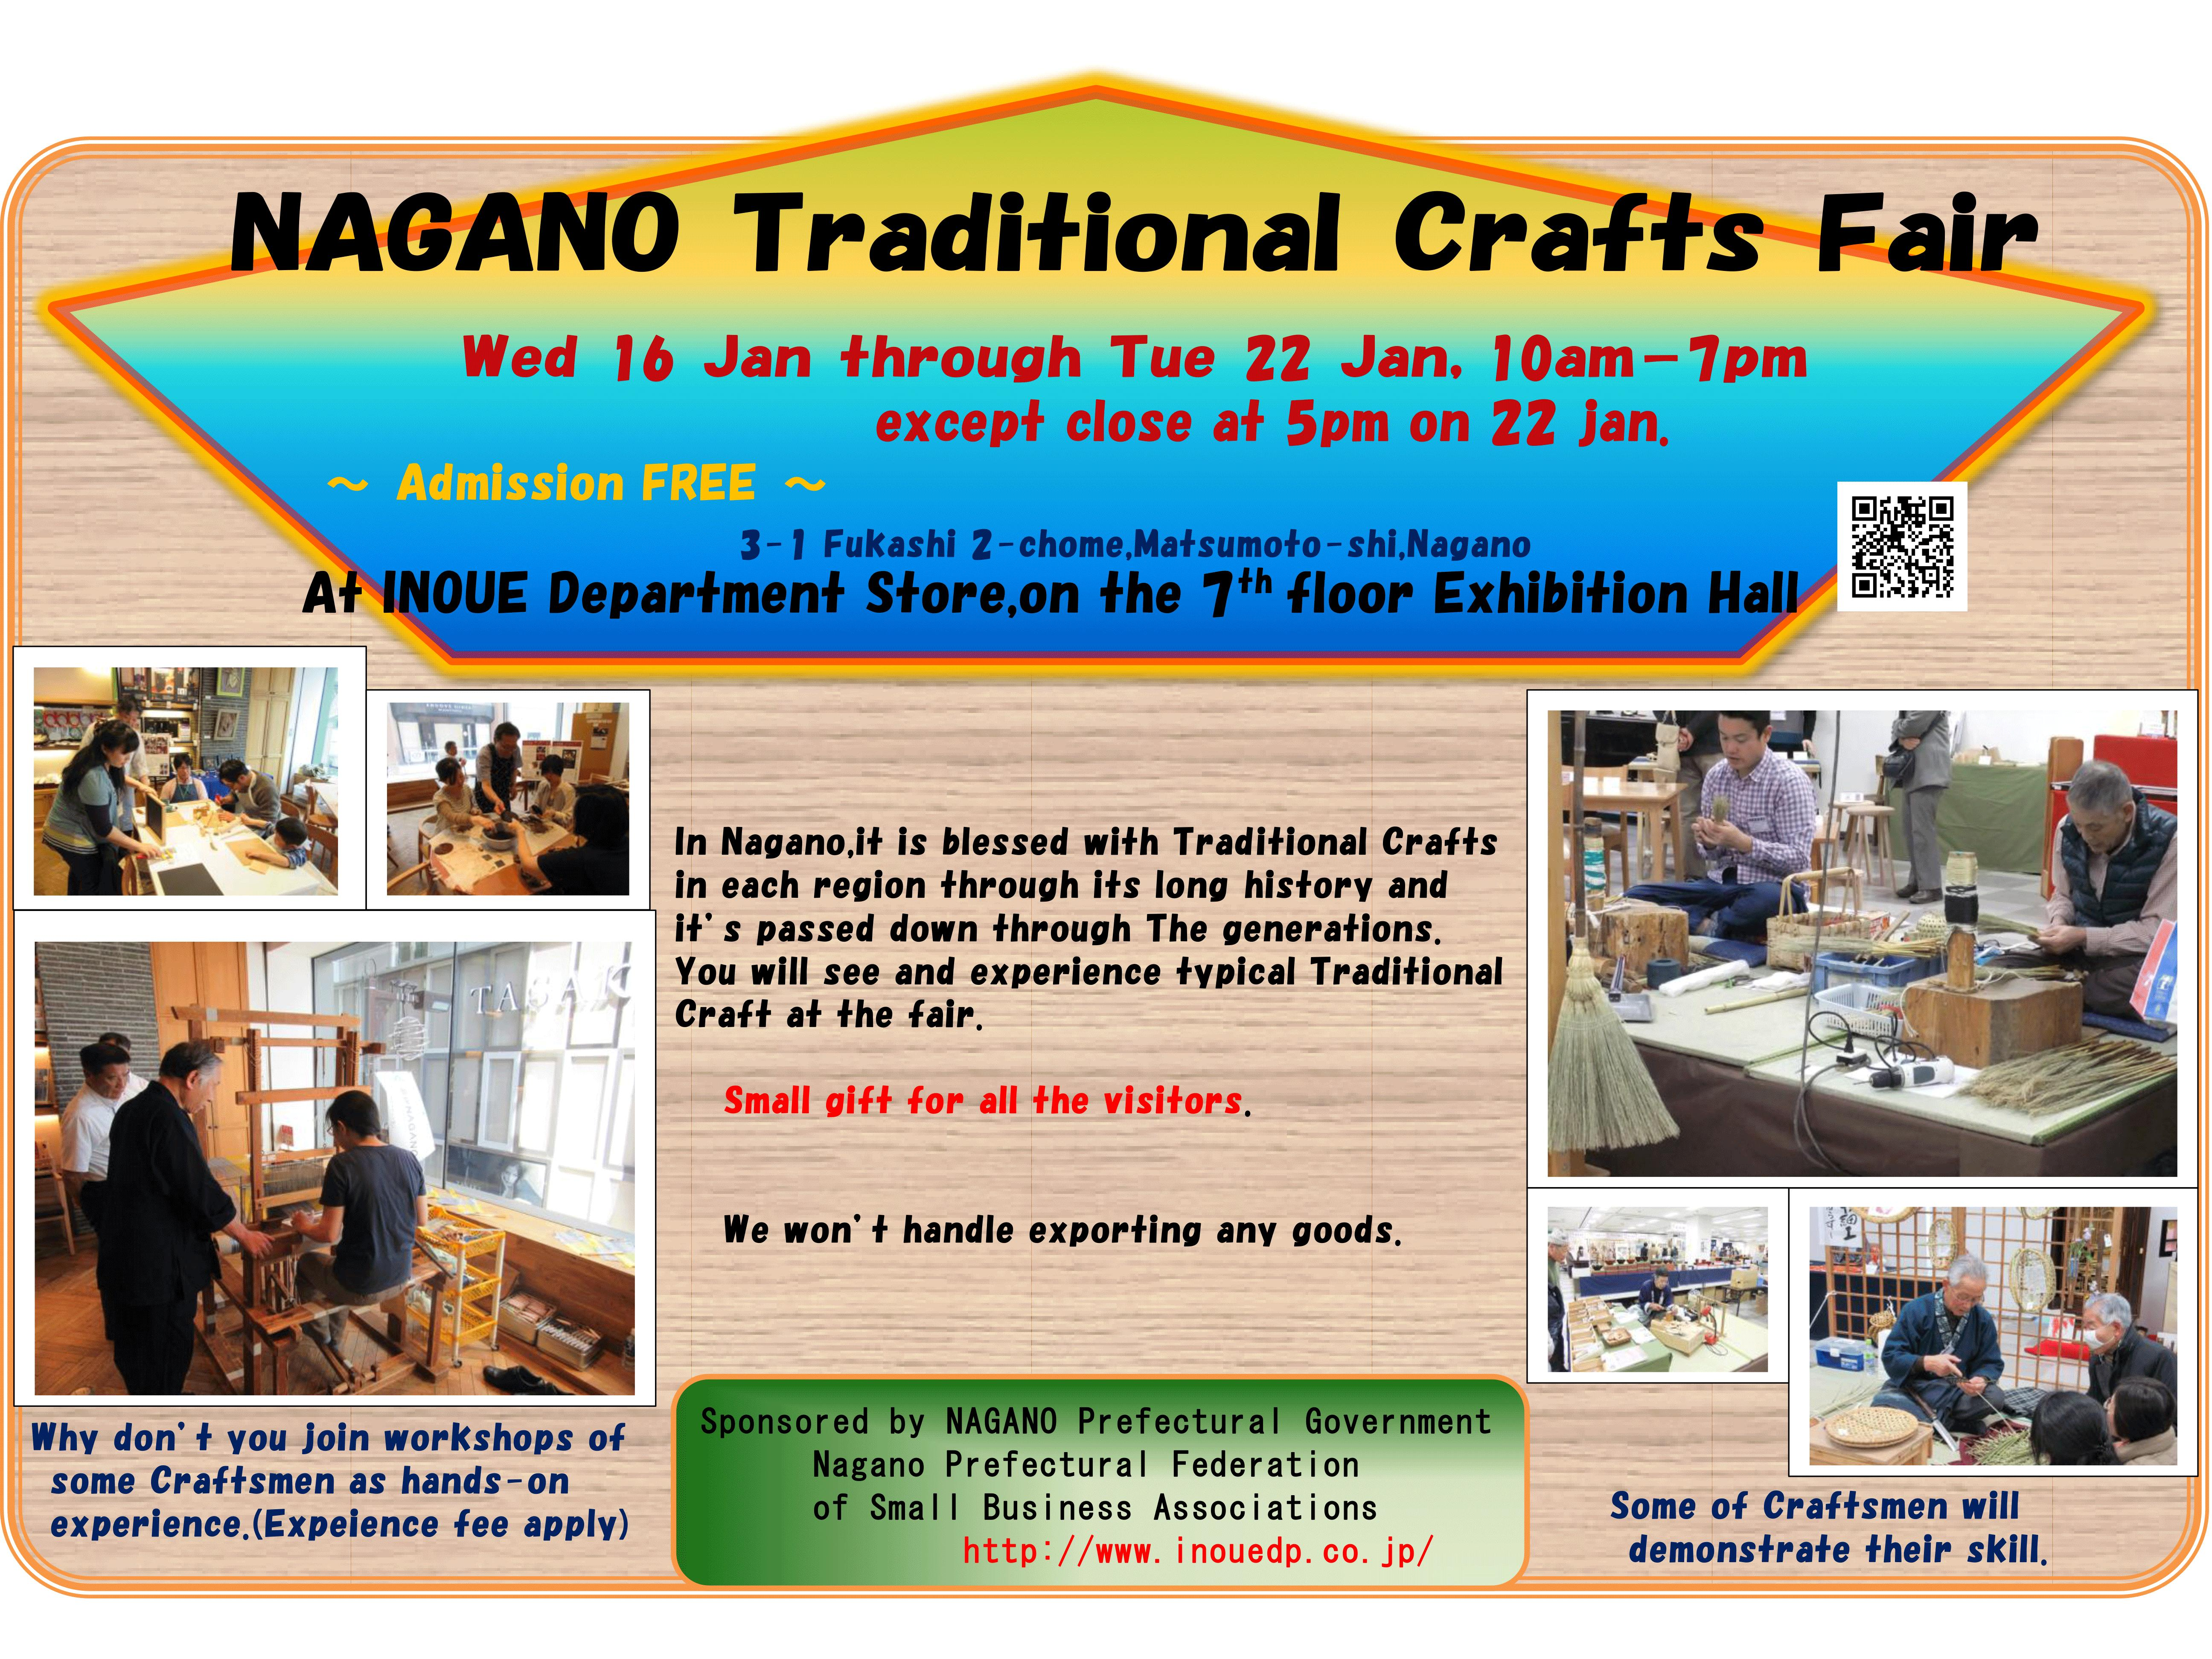 Nagano Traditional Crafts Fair